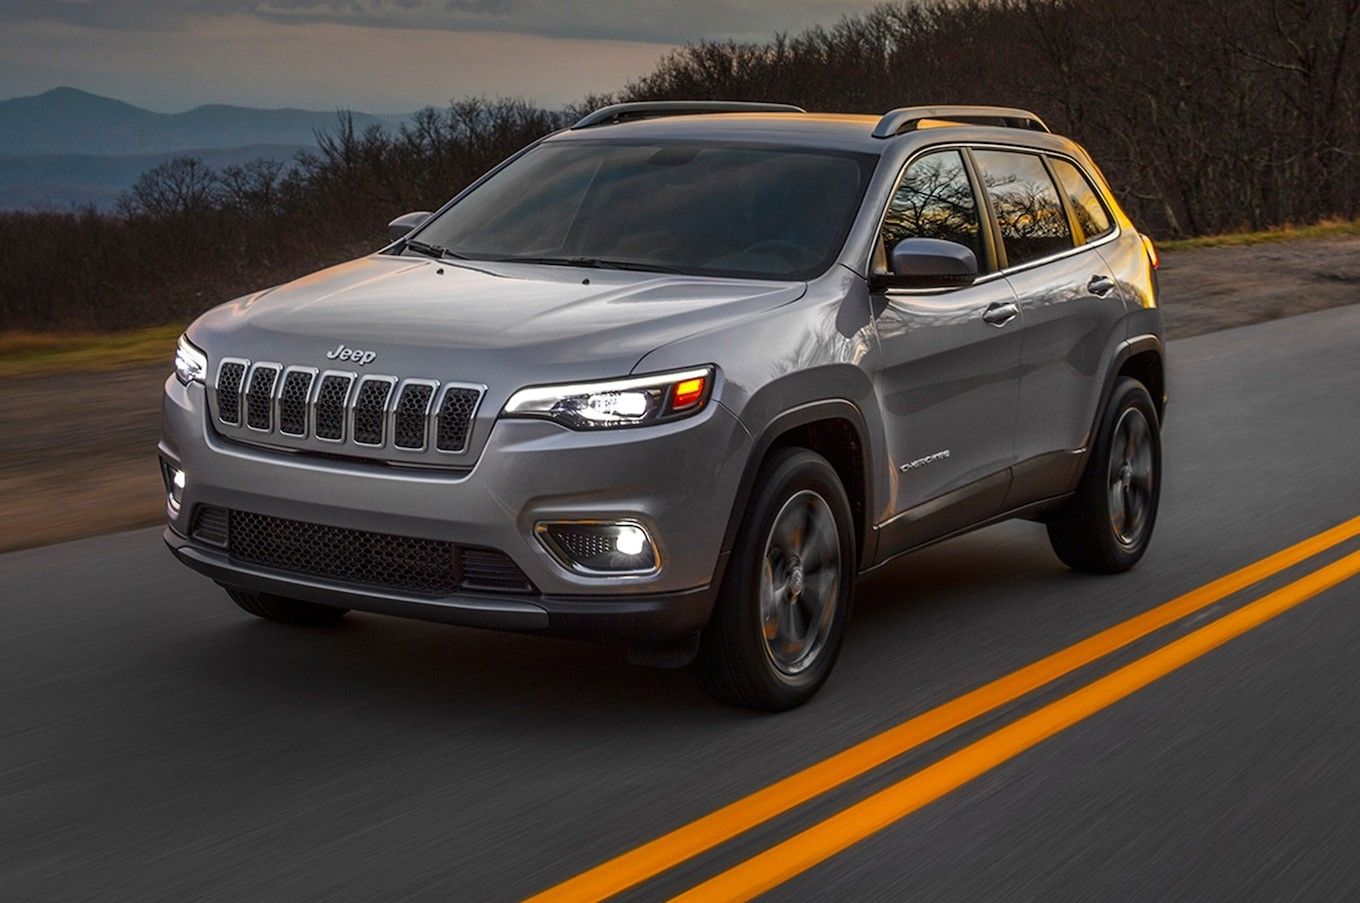 2019 Jeep Grand Cherokee Mpg Interior Exterior And Review